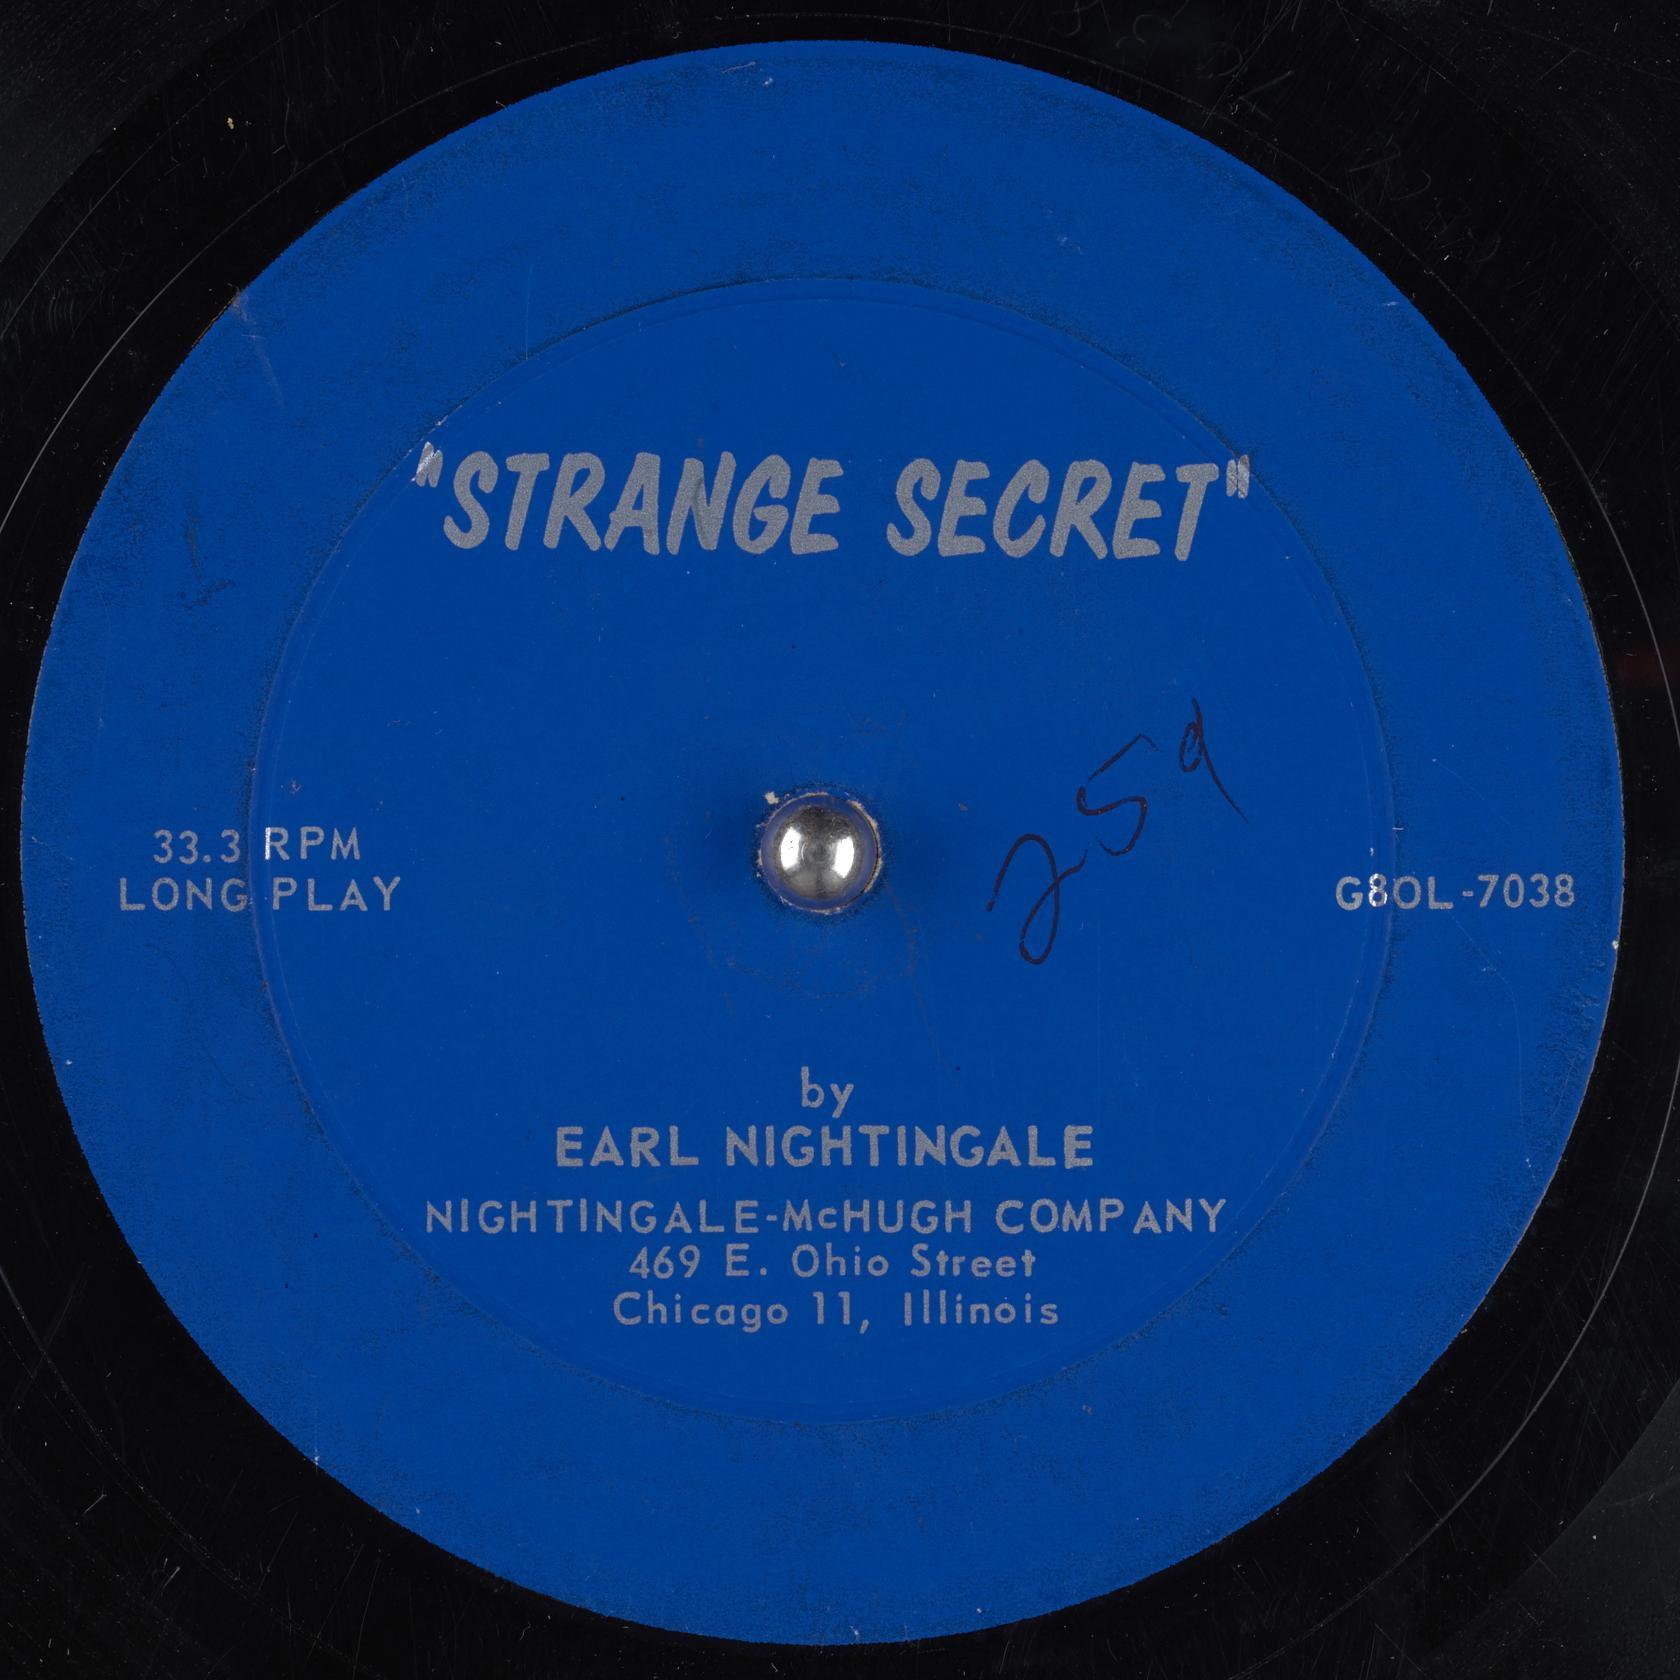 Https://archive.org/details/78 Strange Secret Earl Nightingale Gbia0000649a